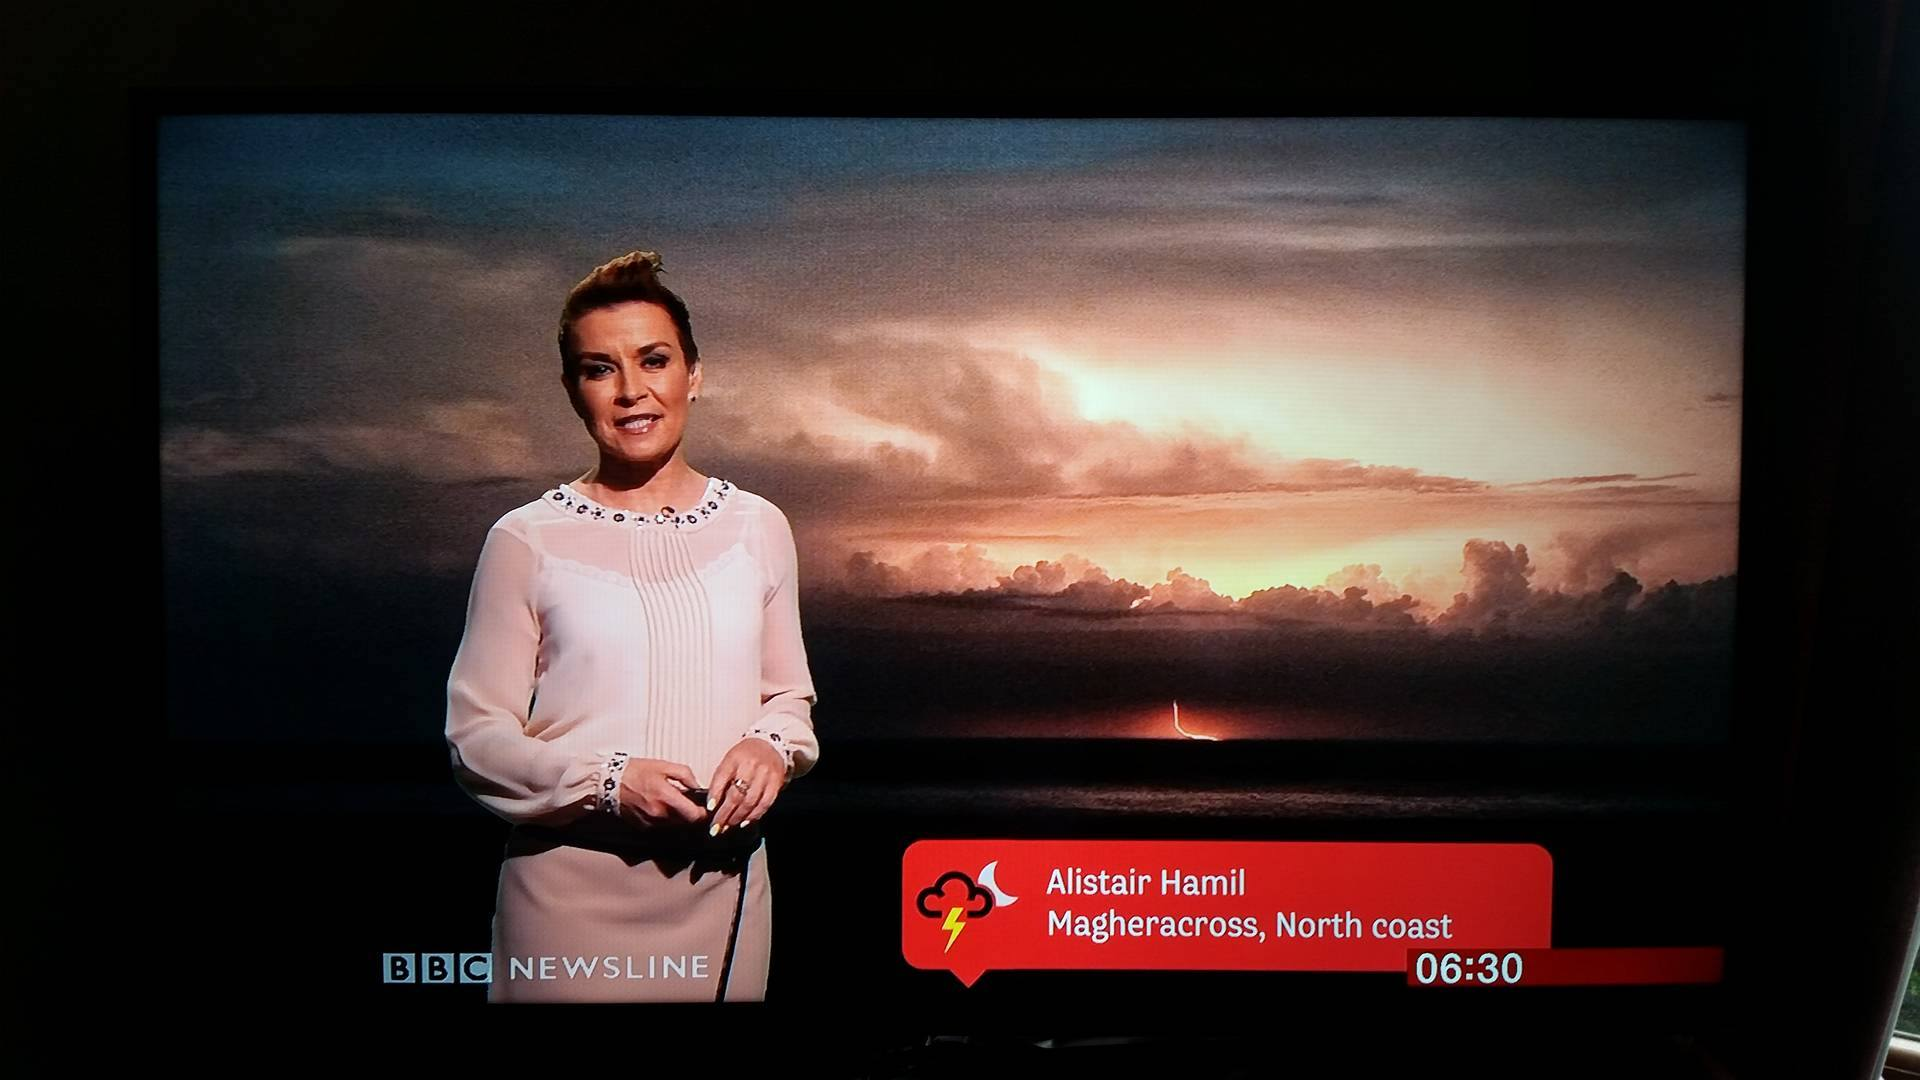 My photo featuring on BBC Newline's weather forecast (thanks to Chris Ibbotson for taking this photo for me!)